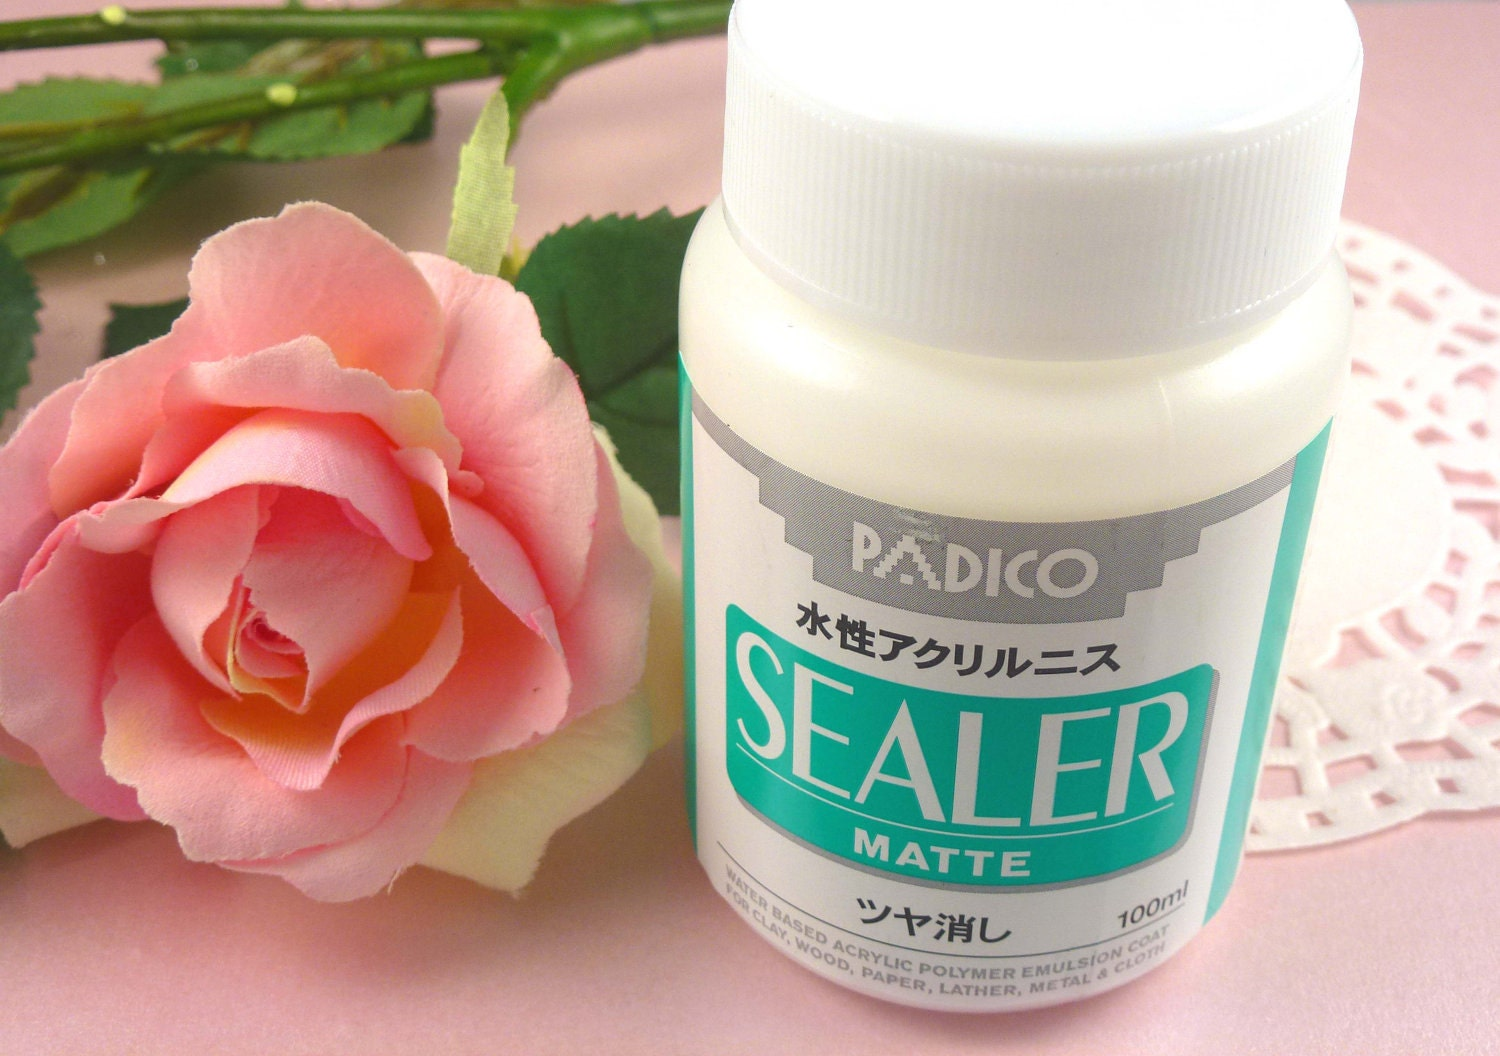 Items similar to padico matte clay waterproof sealer for Waterproof acrylic sealer for crafts